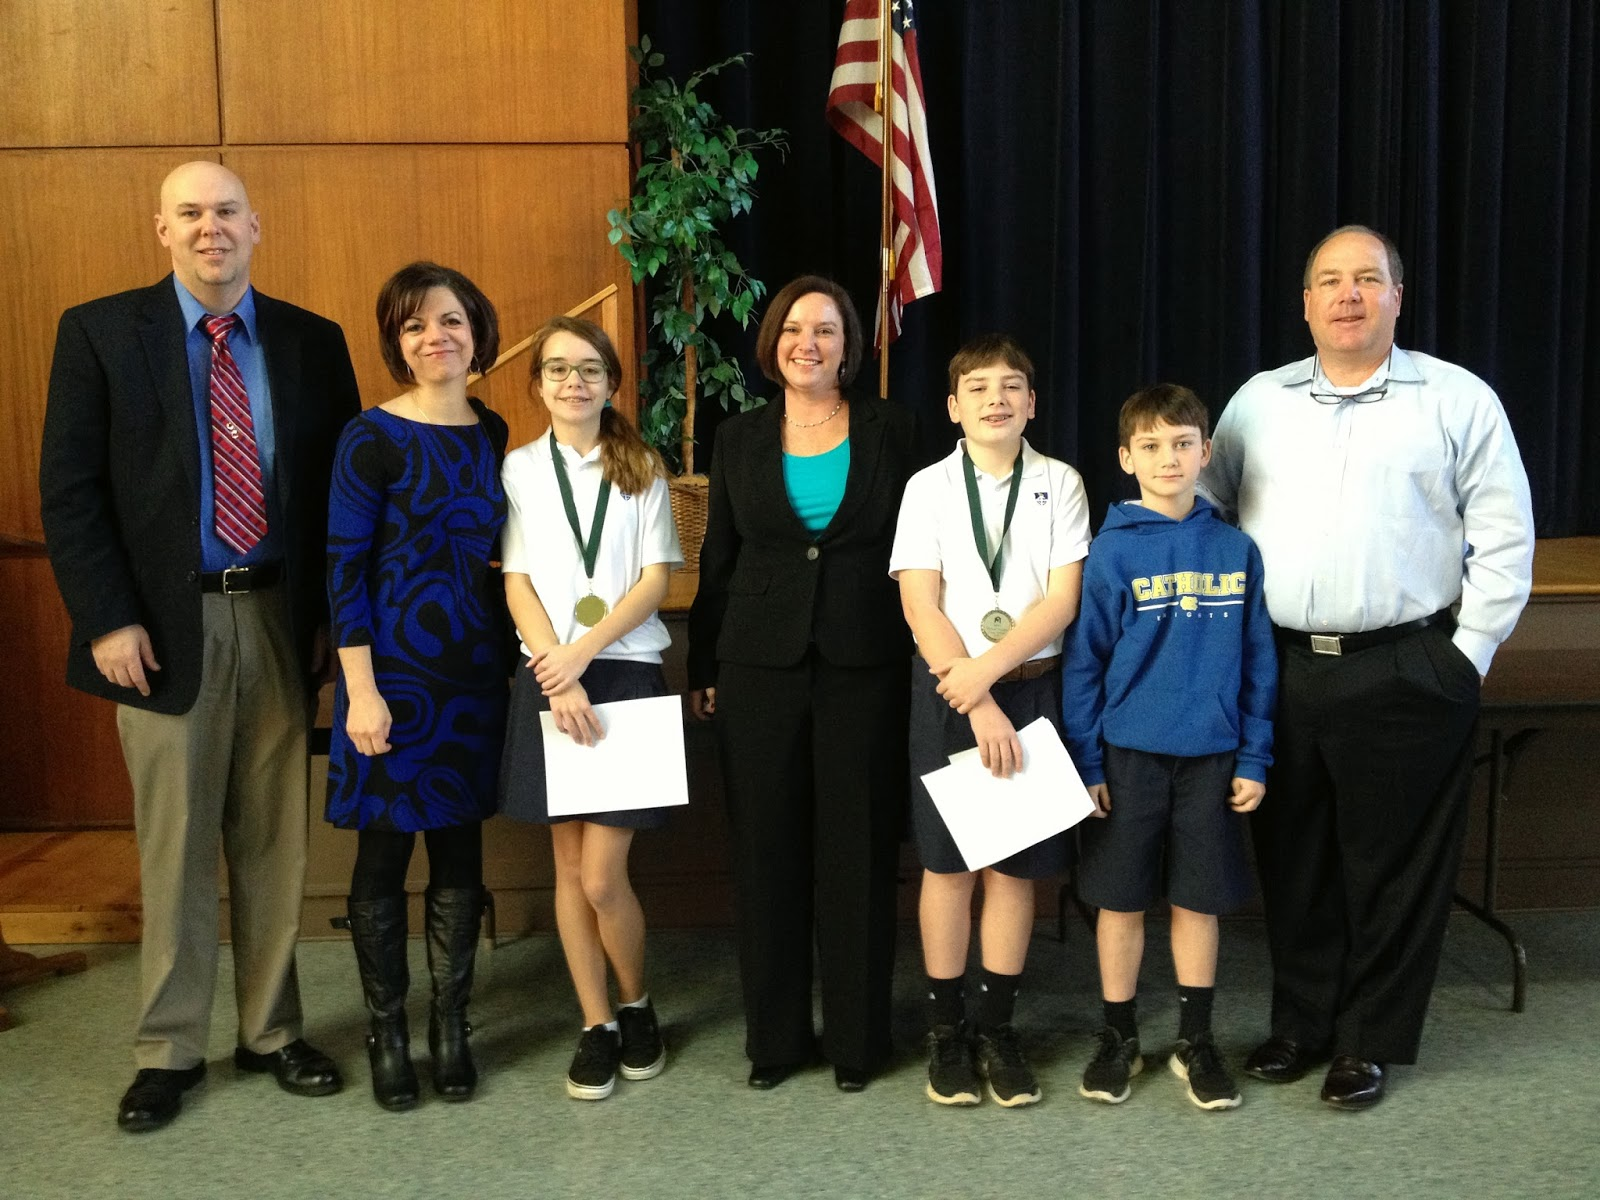 Two MCPS Sixth Grade Students Win Humane Society Essay Contest 2